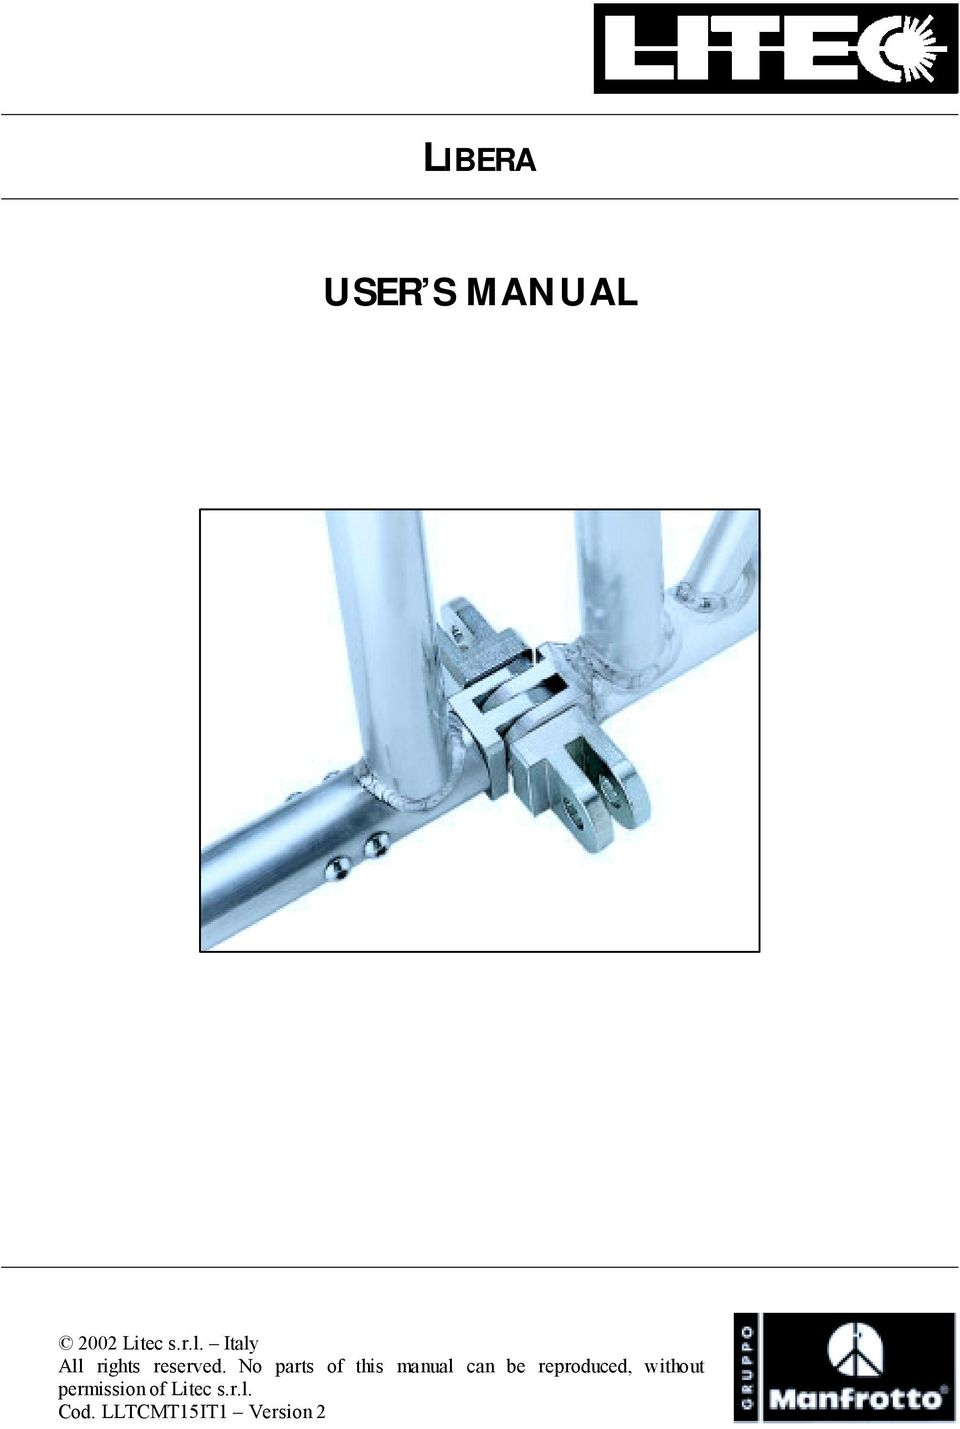 No parts of this manual can be